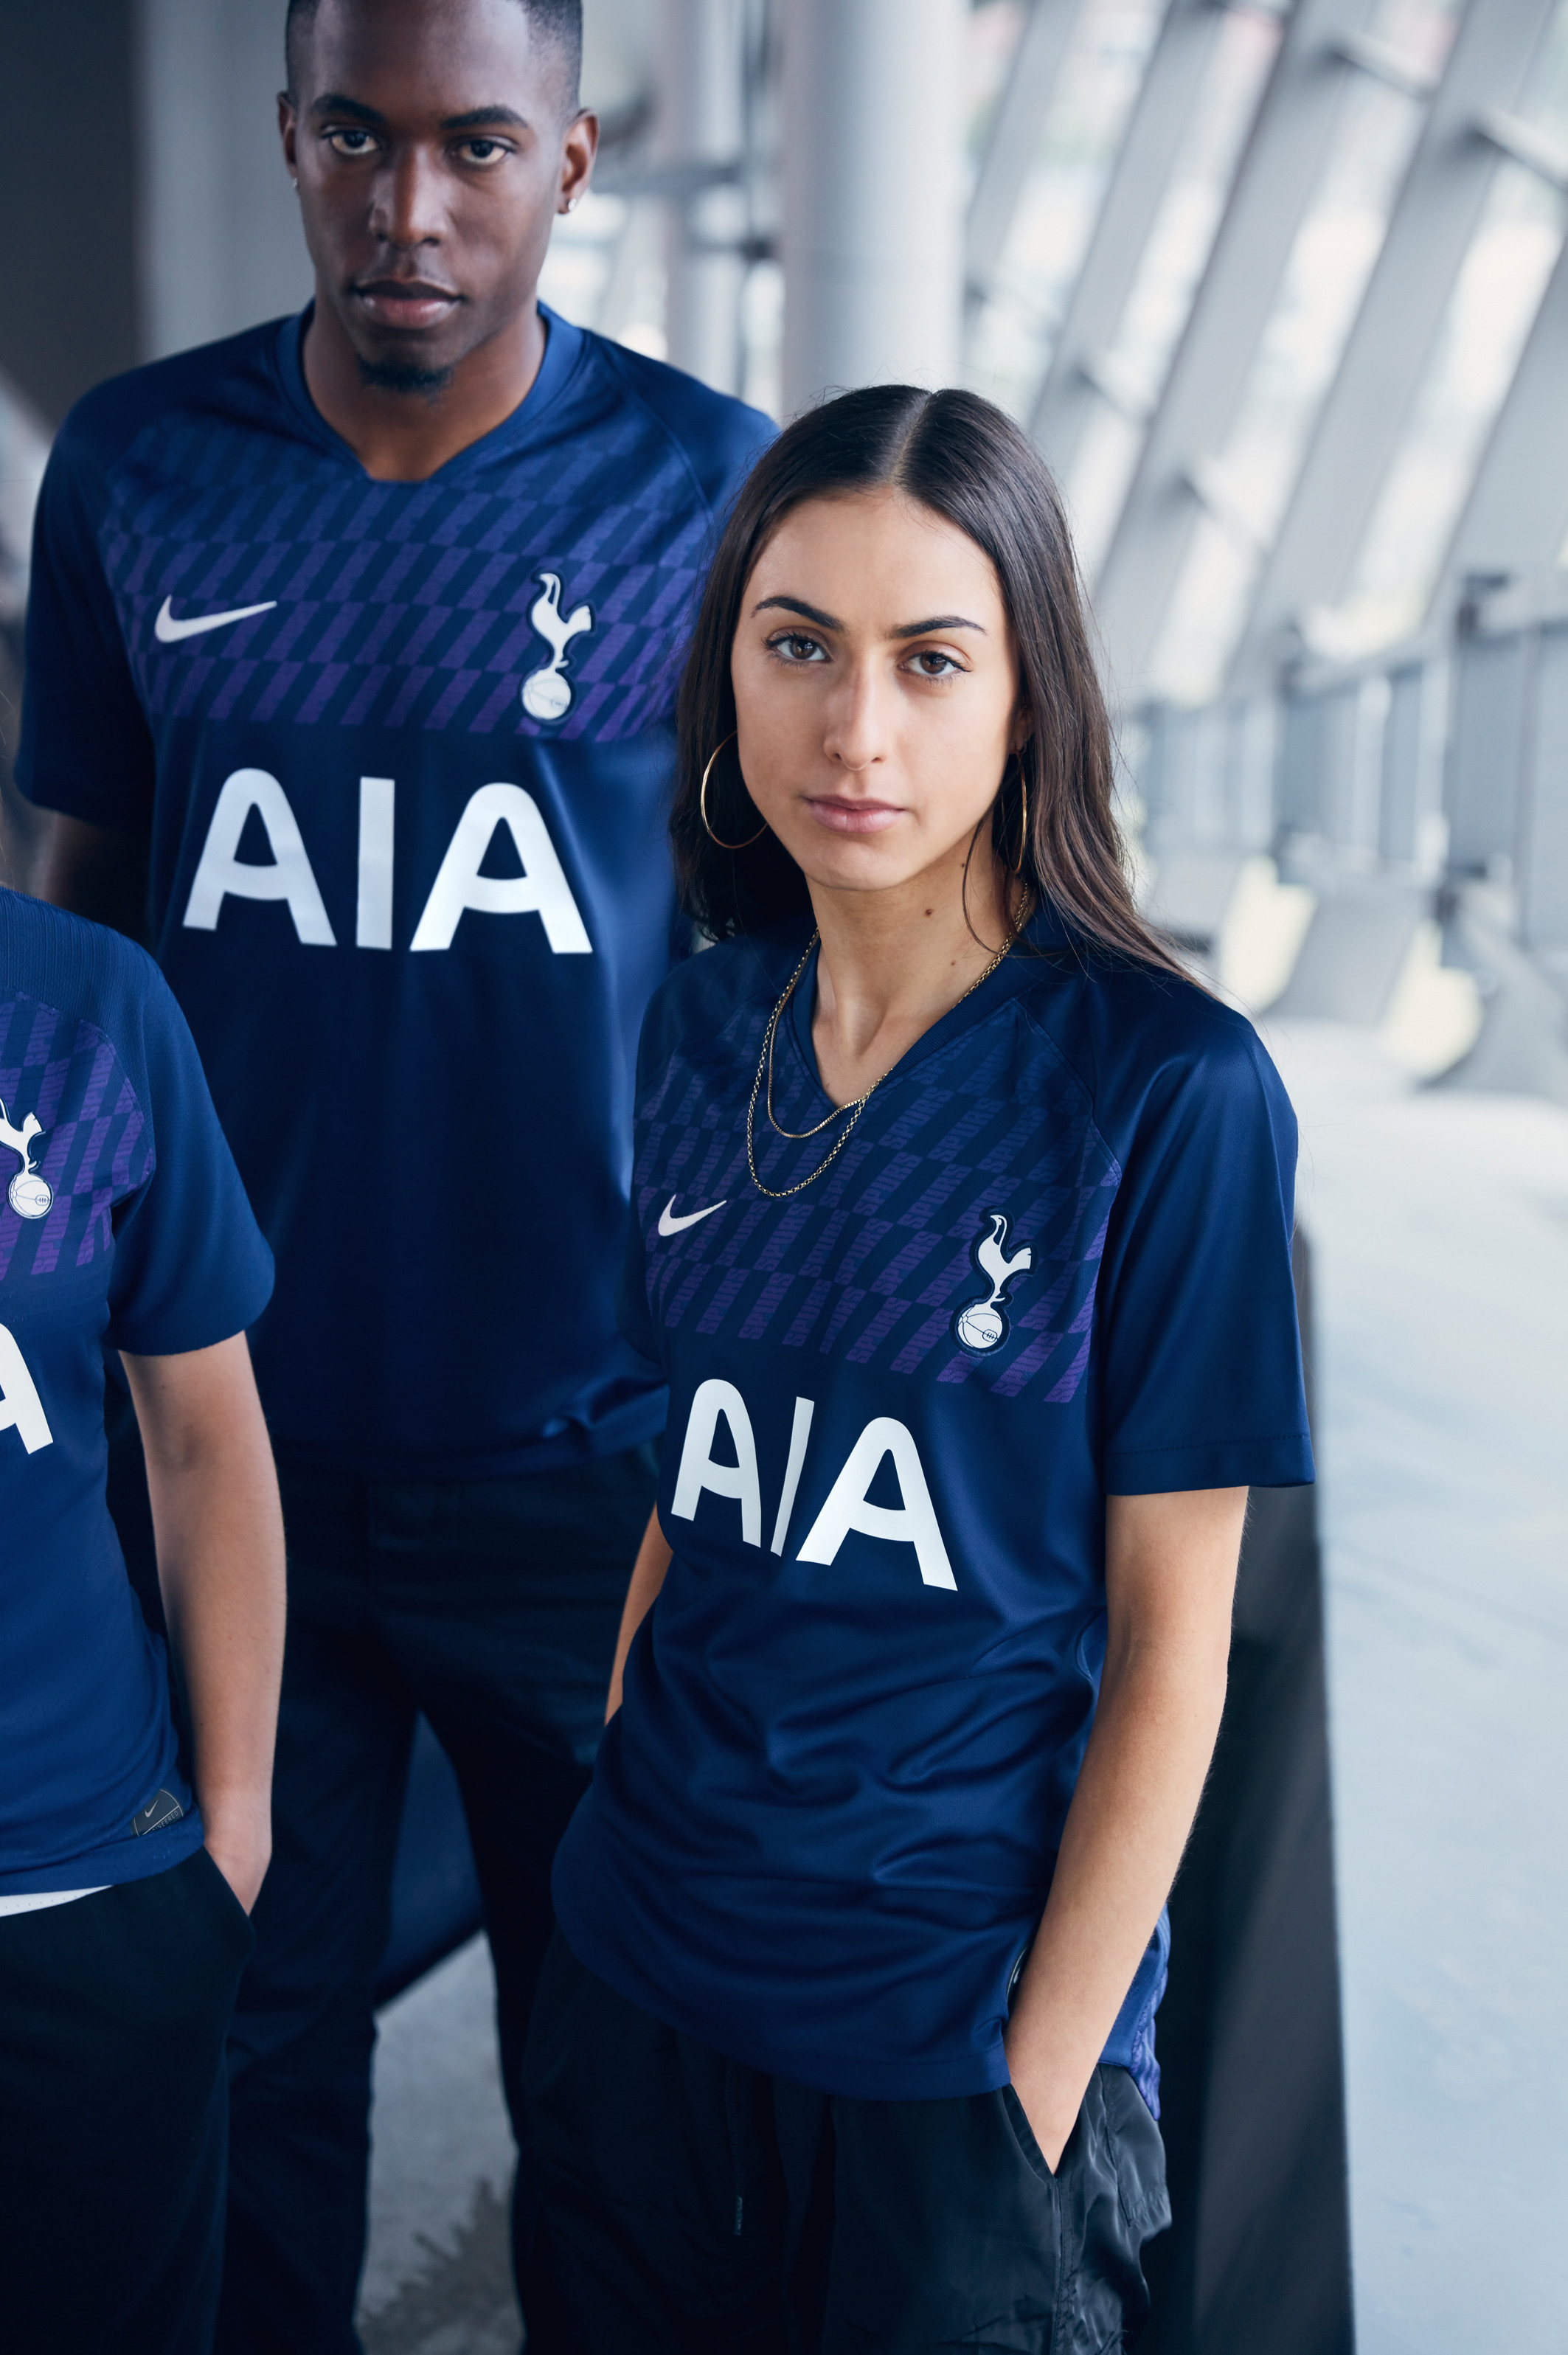 71c299ec The 2019-20 Tottenham Hotspur home kit launches July 18 and the away kit  releases August 3 at nike.com.